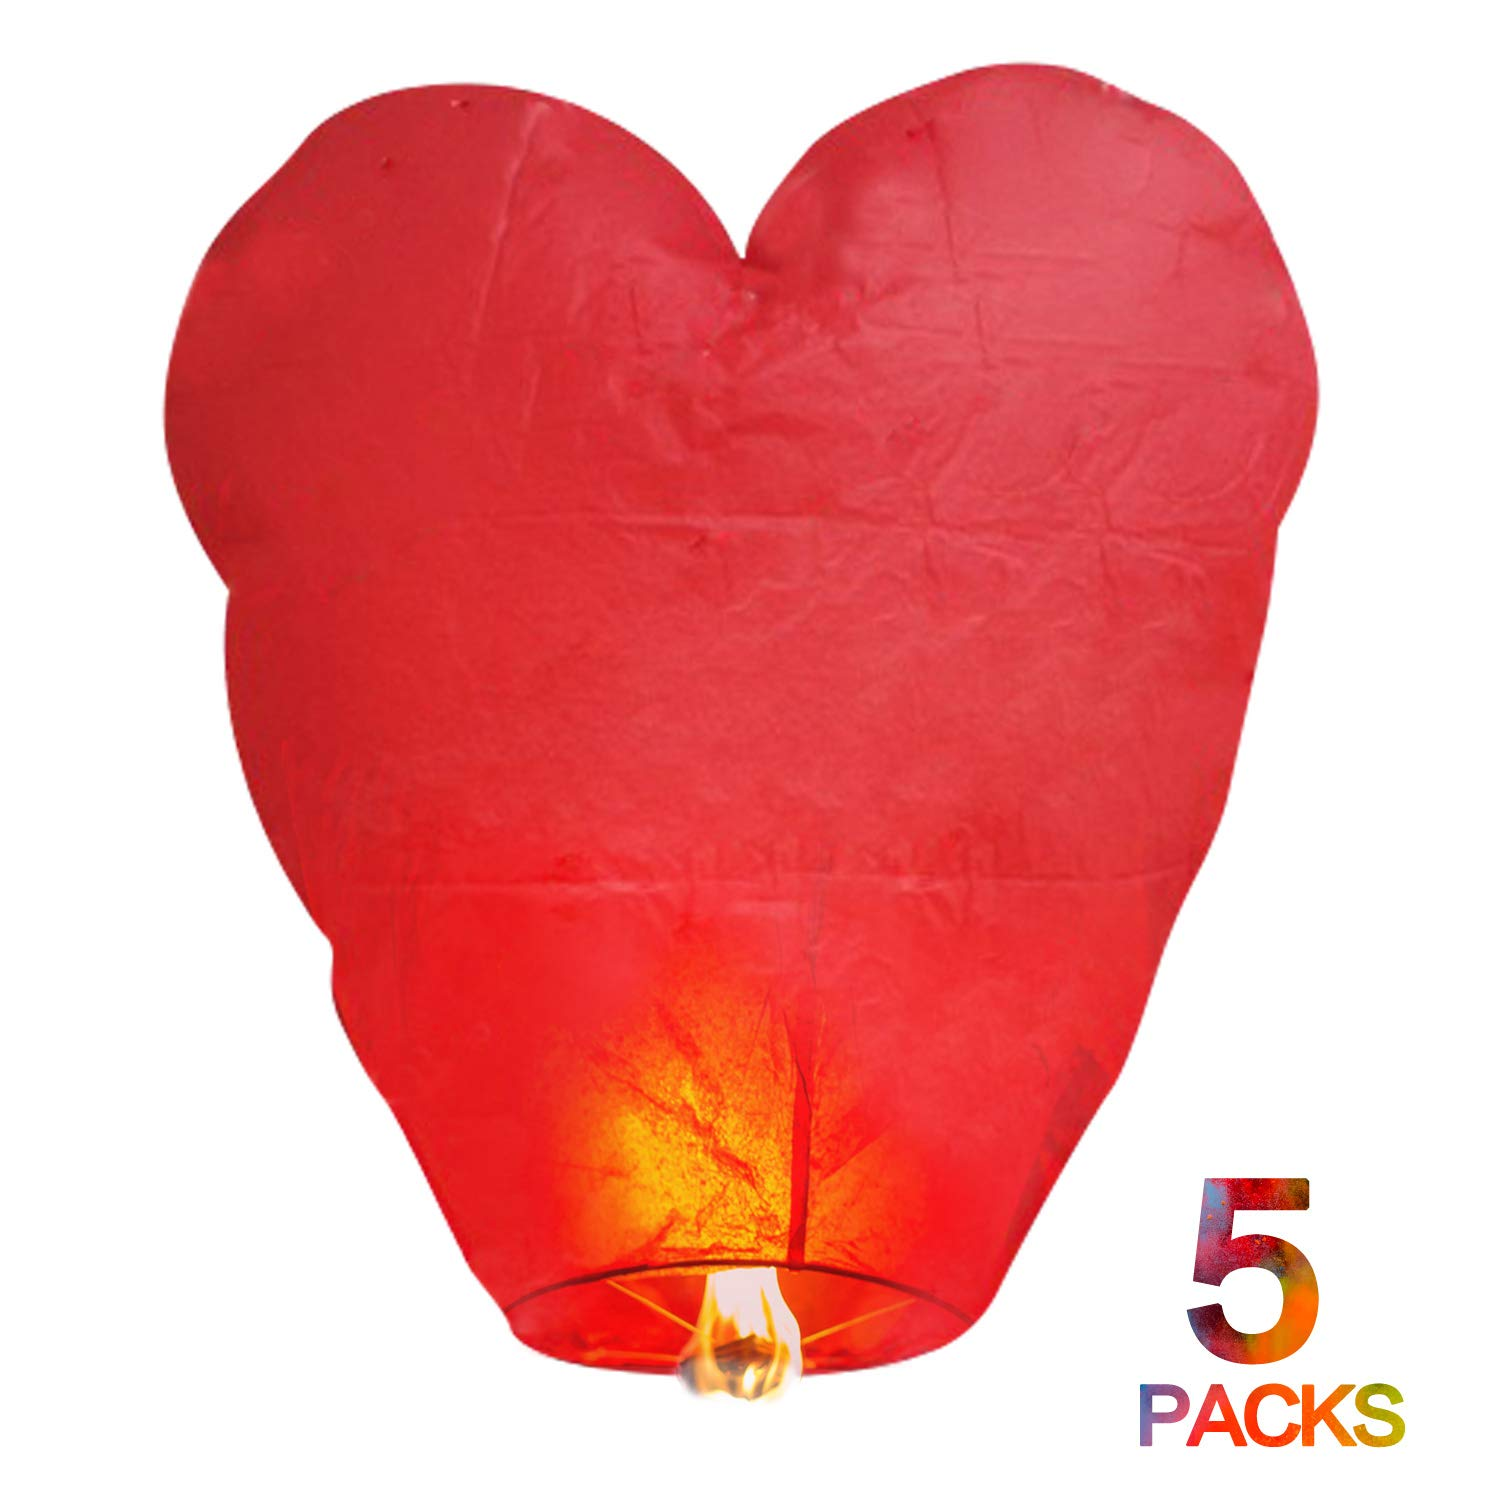 BATTIFE Floating Sky Lanterns Chinese Love Heart Shaped 100% Biodegradable Paper Eco Friendly Romantic Night 5 Pack for Valentine's Day Party Memorial Day to Release in Sky